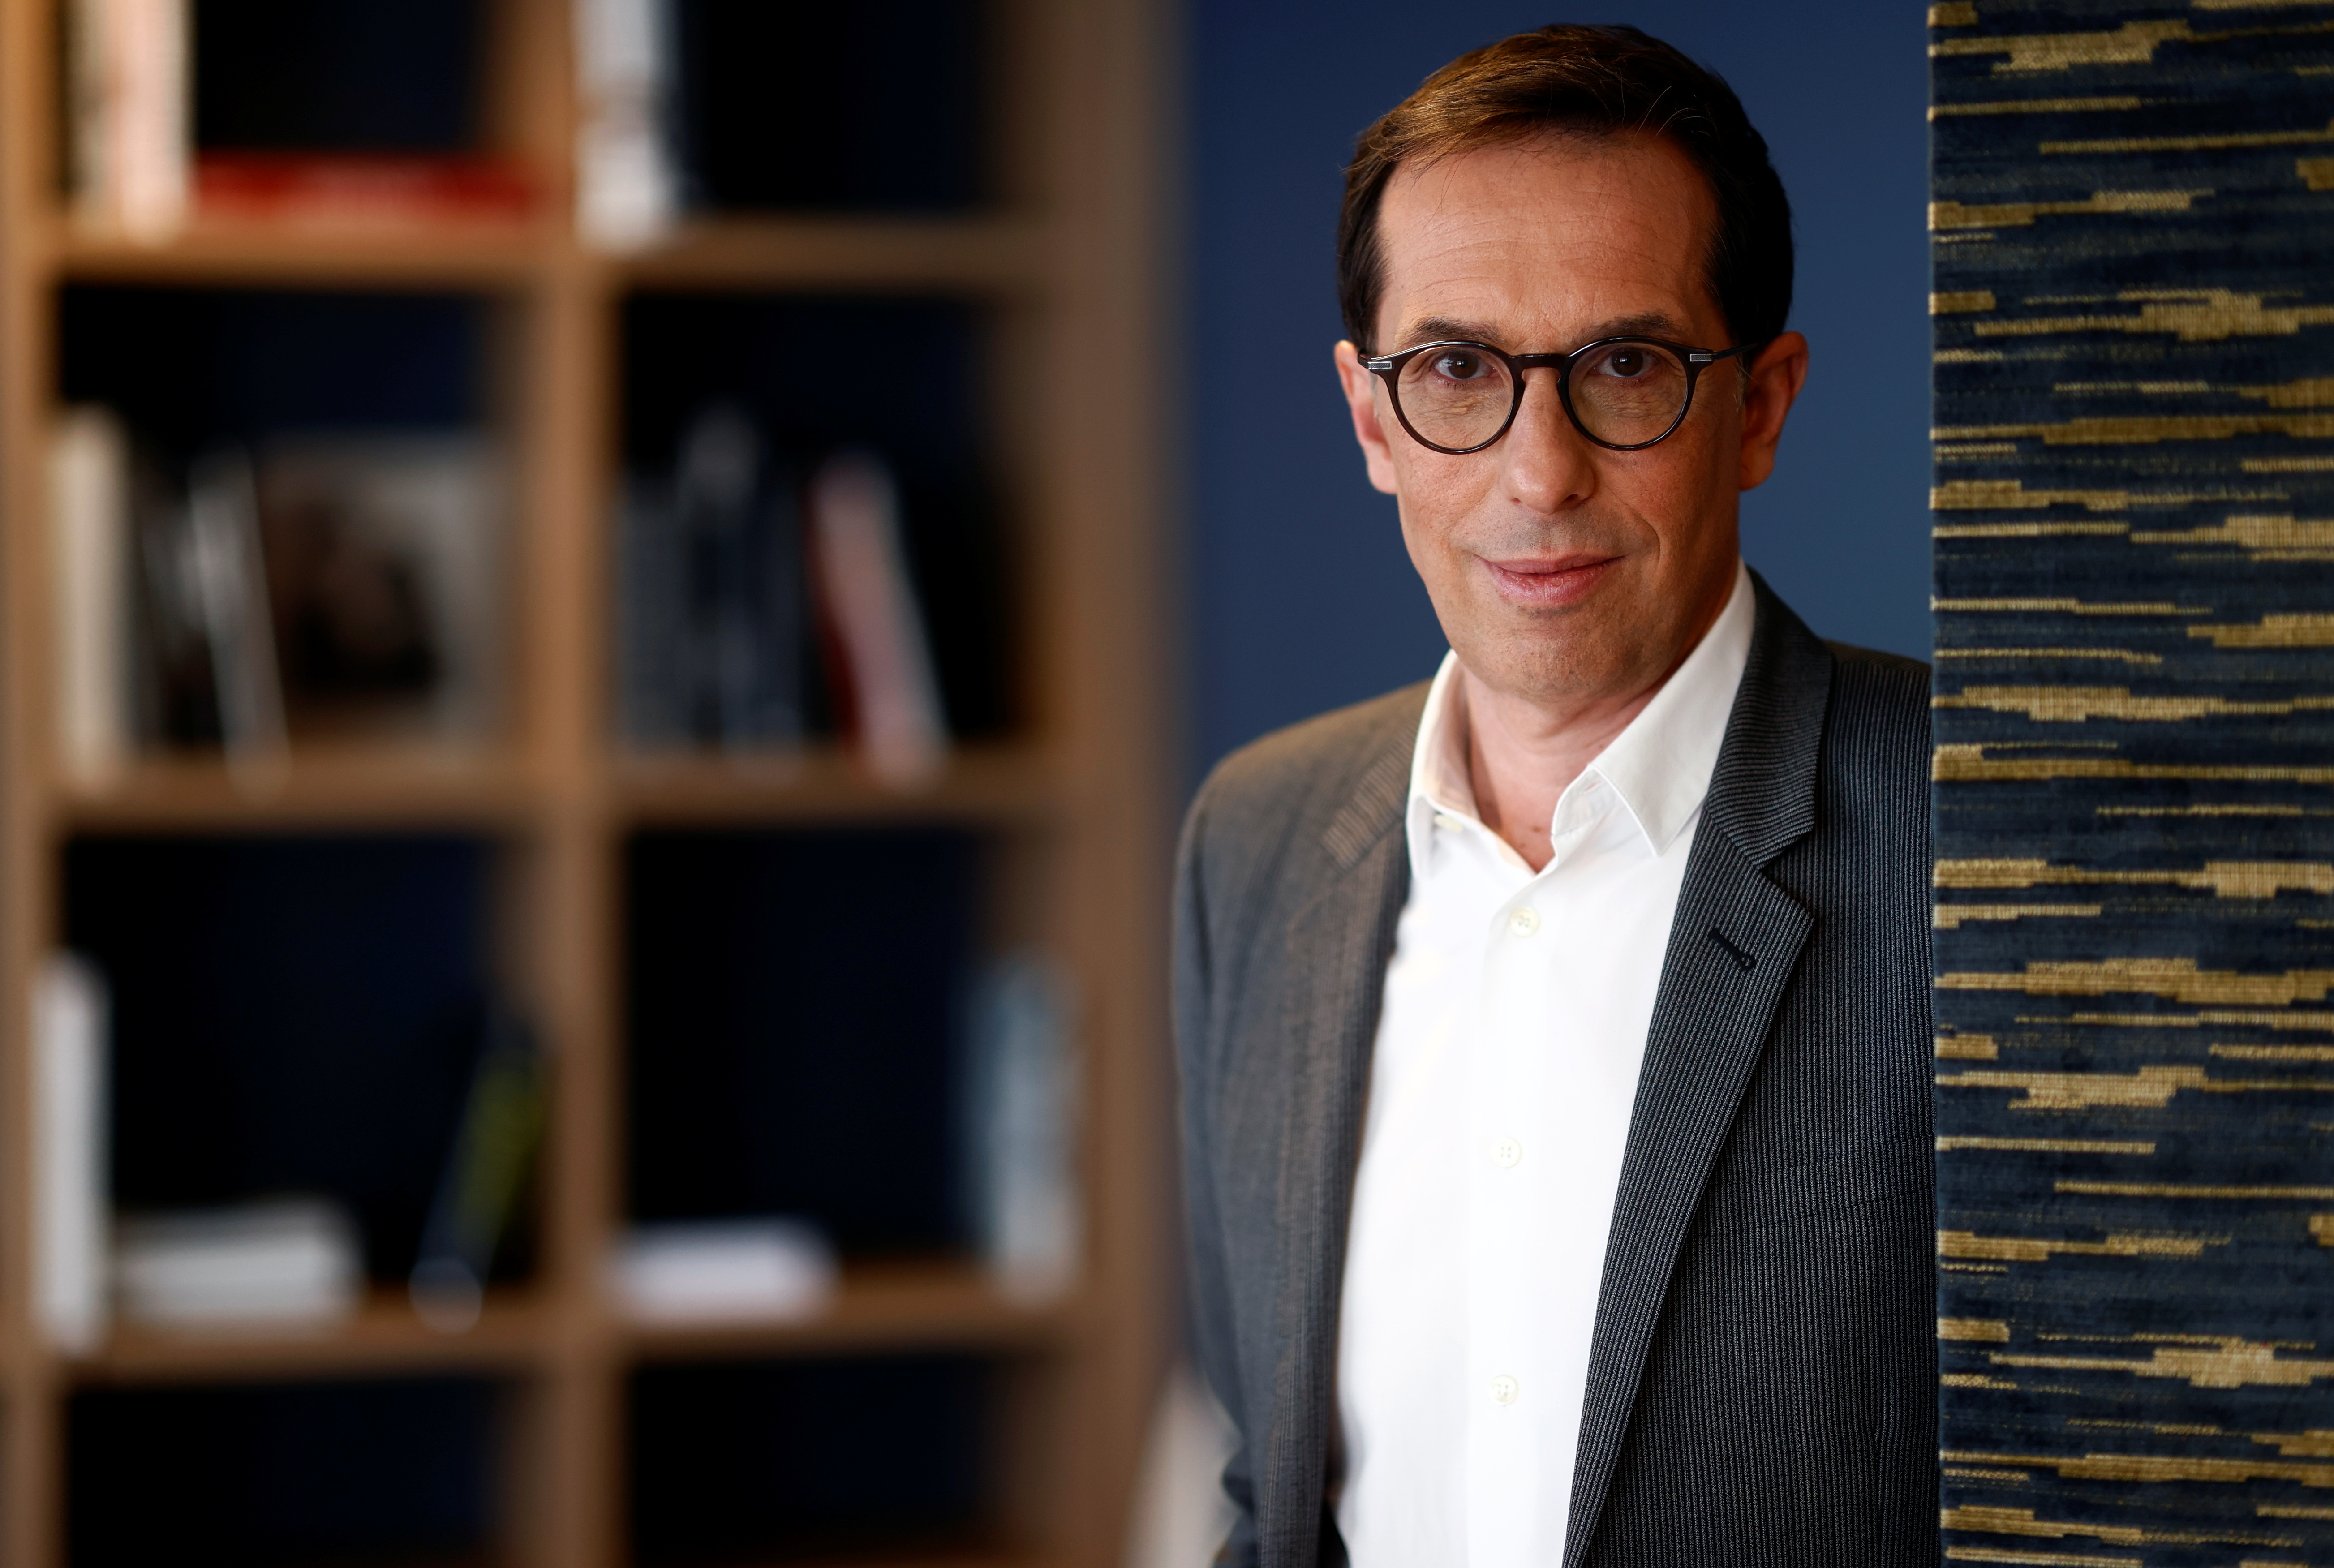 L'Oreal CEO Nicolas Hieronimus poses after an interview with Reuters at the company's offices in Levallois-Perret, near Paris, France, May 7, 2021. REUTERS/Christian Hartmann